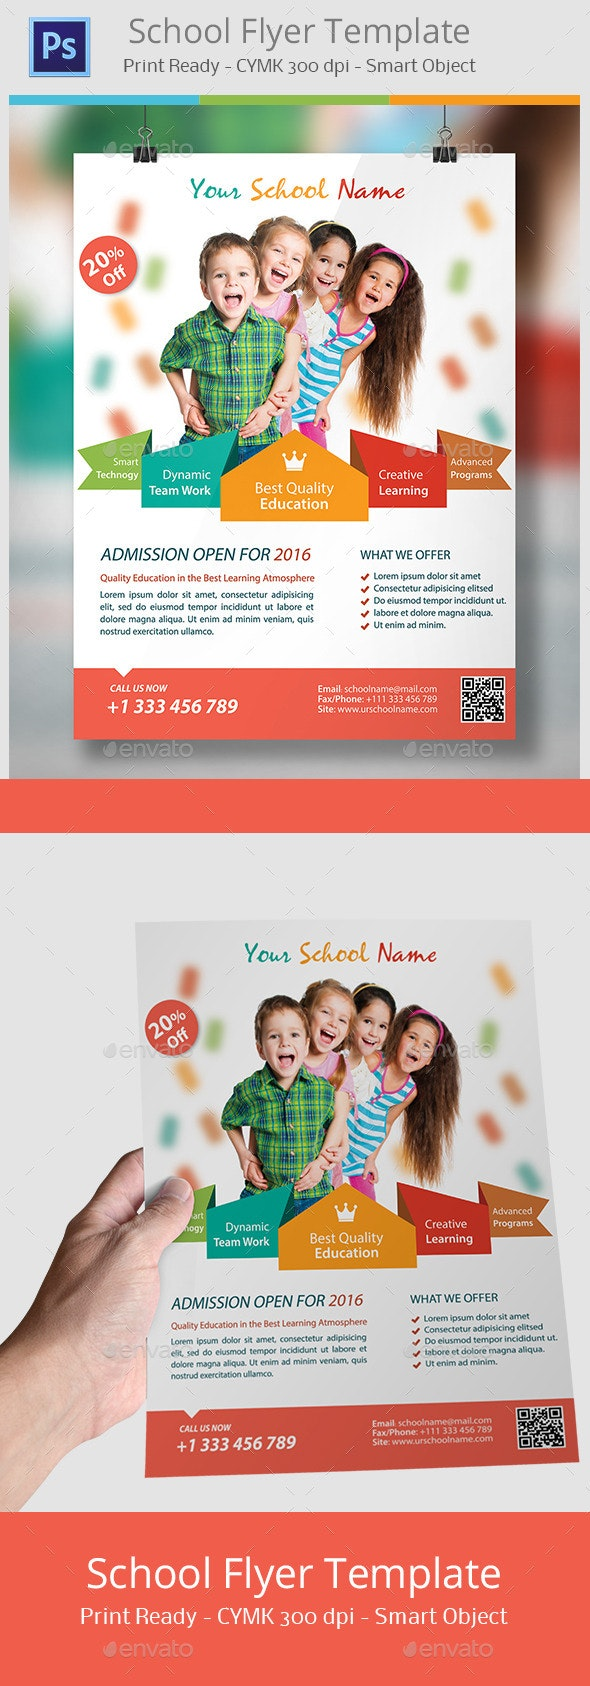 flyer flyers graphicriver brochure templates template schools preschool imgchili education promotion poster models leaflet examples graphic corporate photoshop marketing business